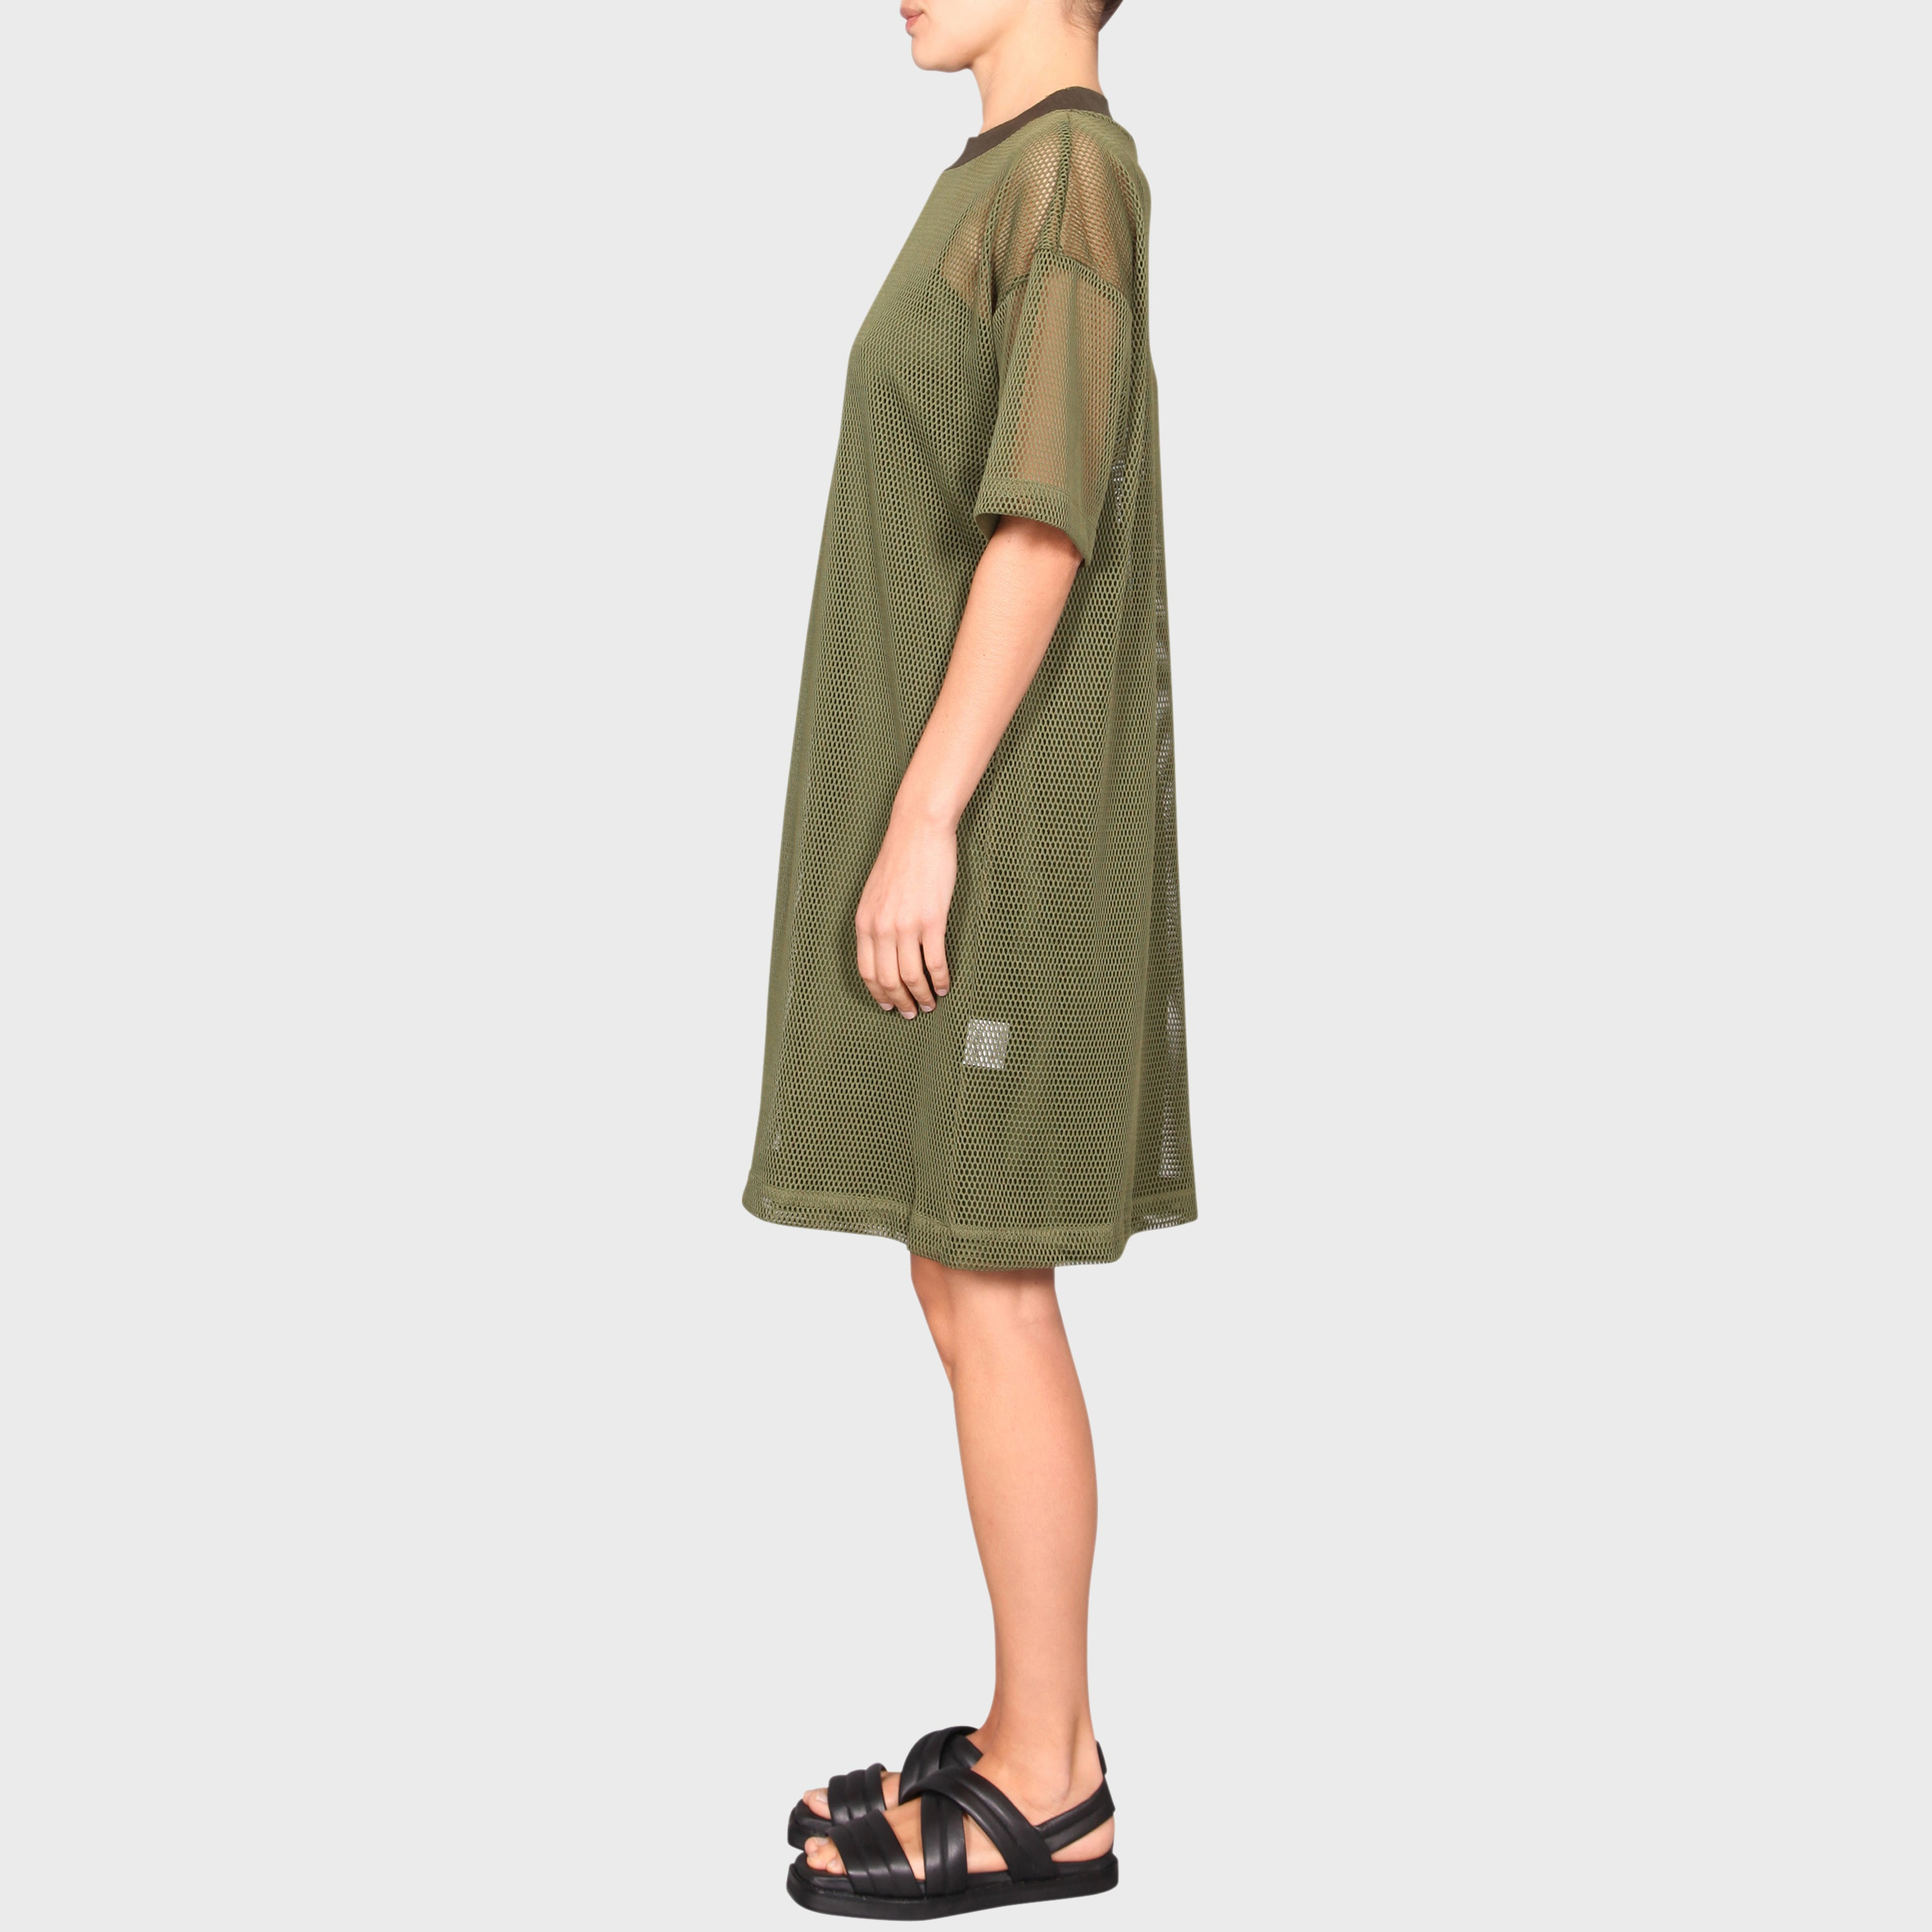 MEGAN DRESS / KHAKI